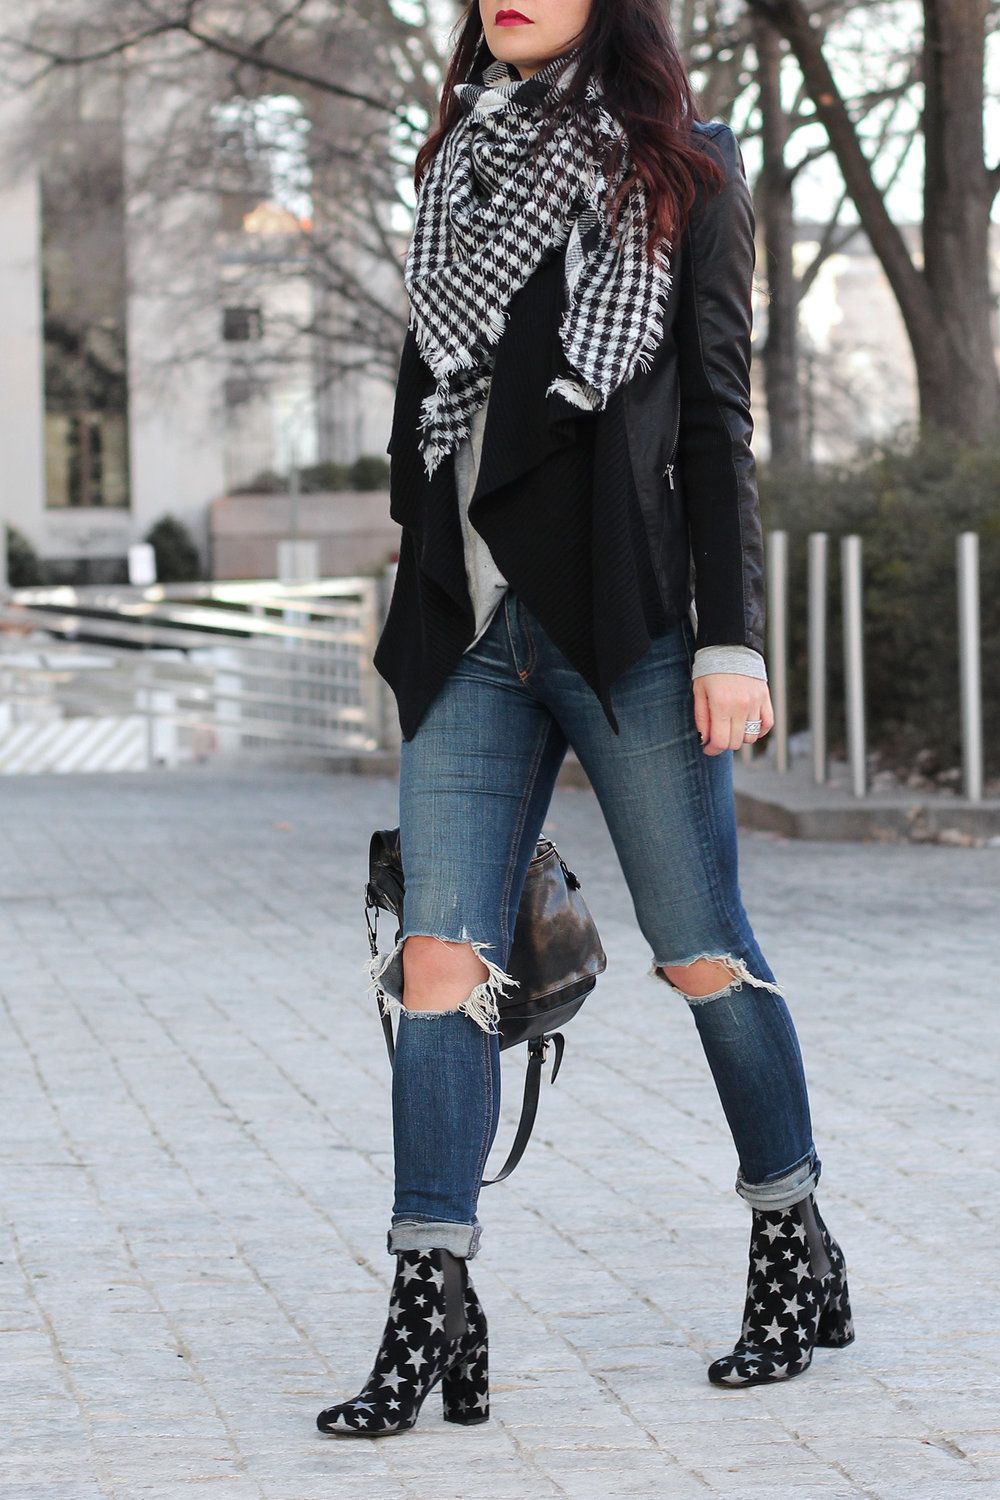 Distressed Jean Outfit